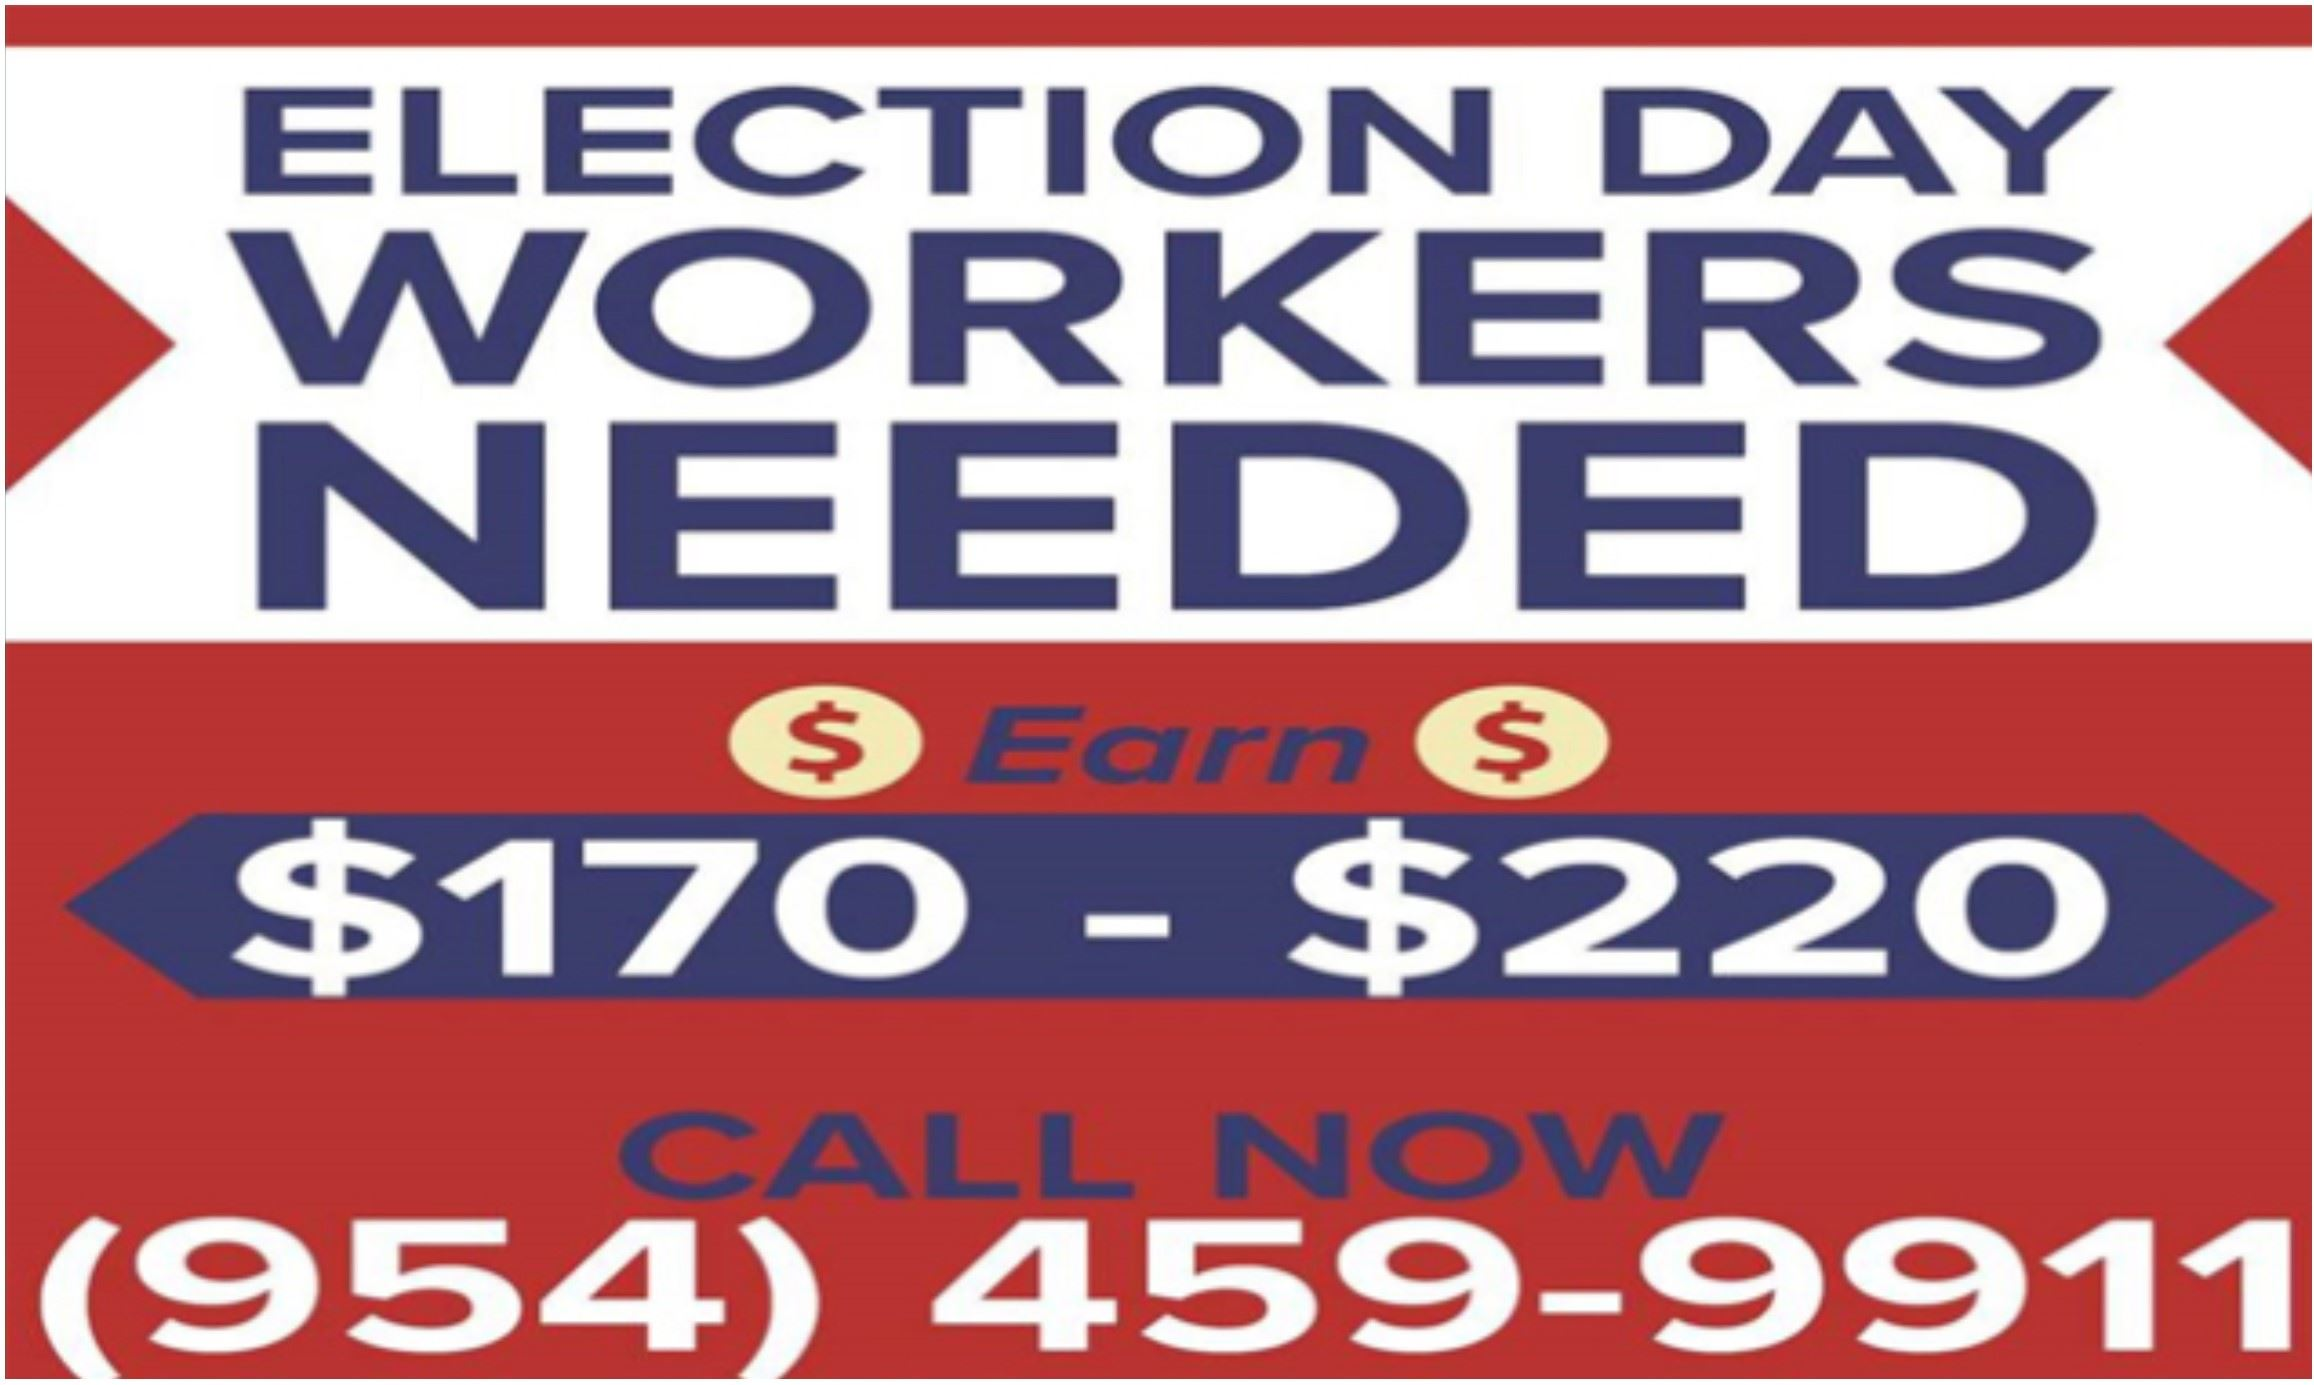 Election worker Banner